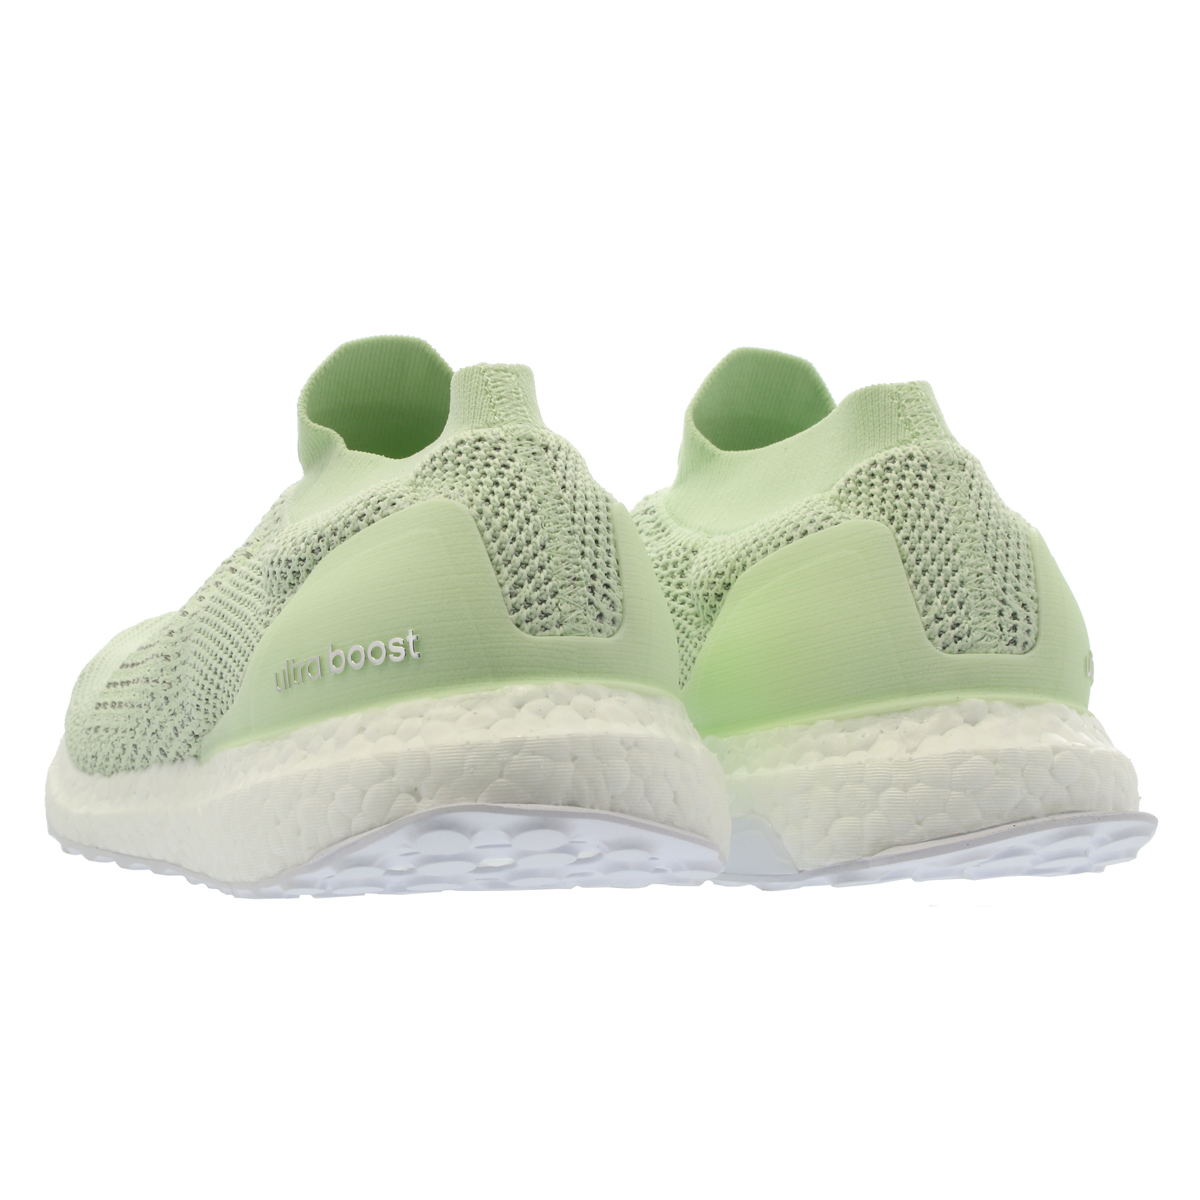 b5d3251232cf7 adidas UltraBOOST LACELESS LTD Adidas ultra boost raceless LTD ASH  GREEN AERO GREEN RUNNING WHITE